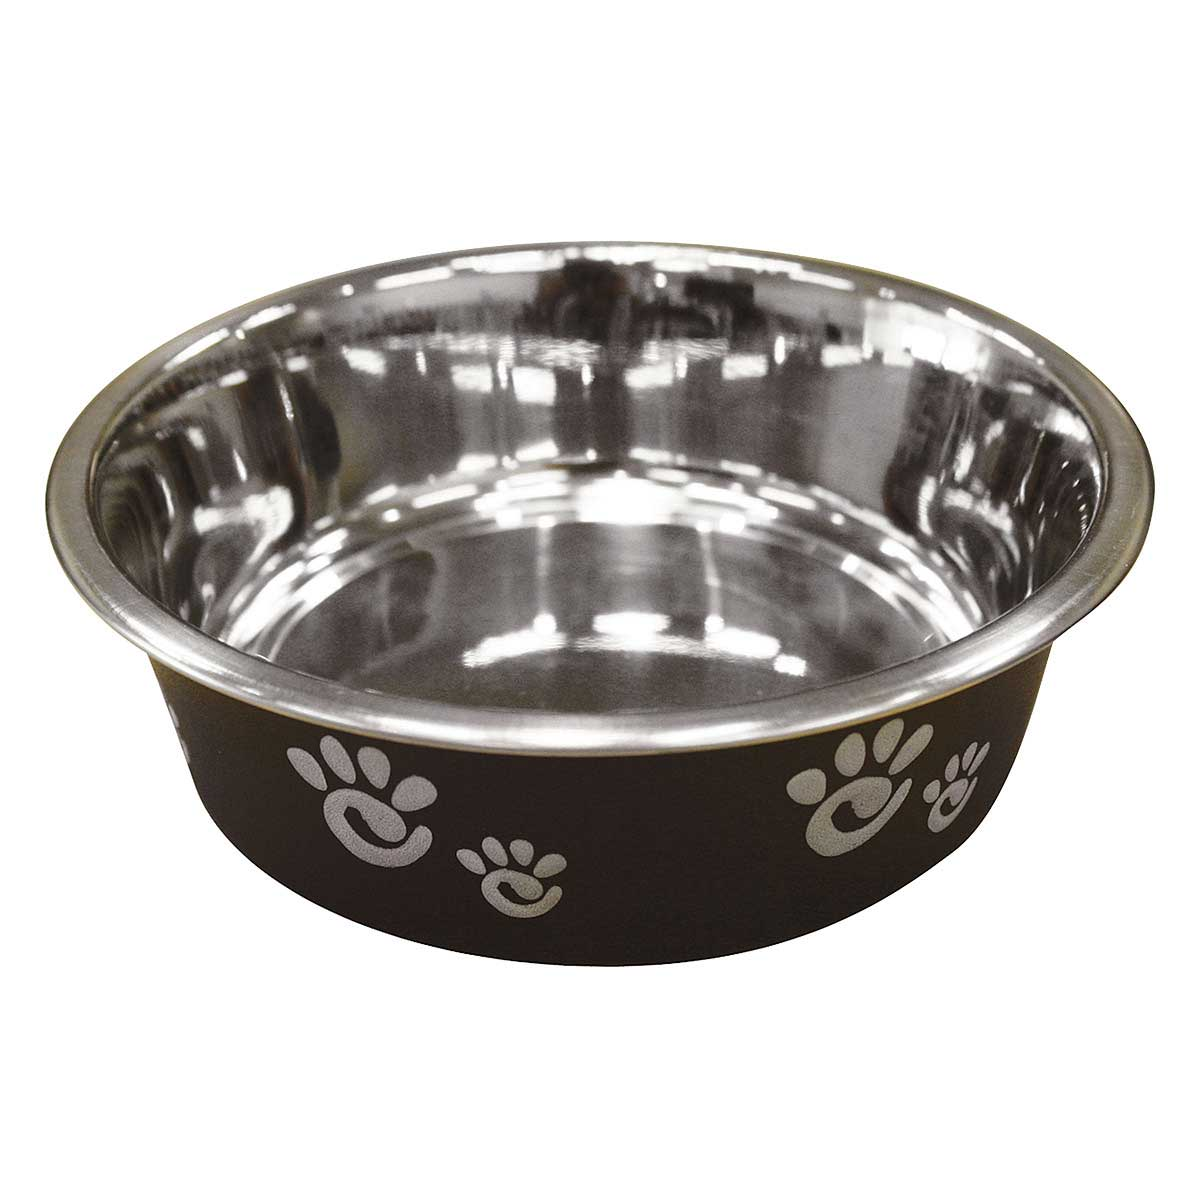 Barcelona Bowl for Dogs - Matte Black Licorice Holds 8 oz